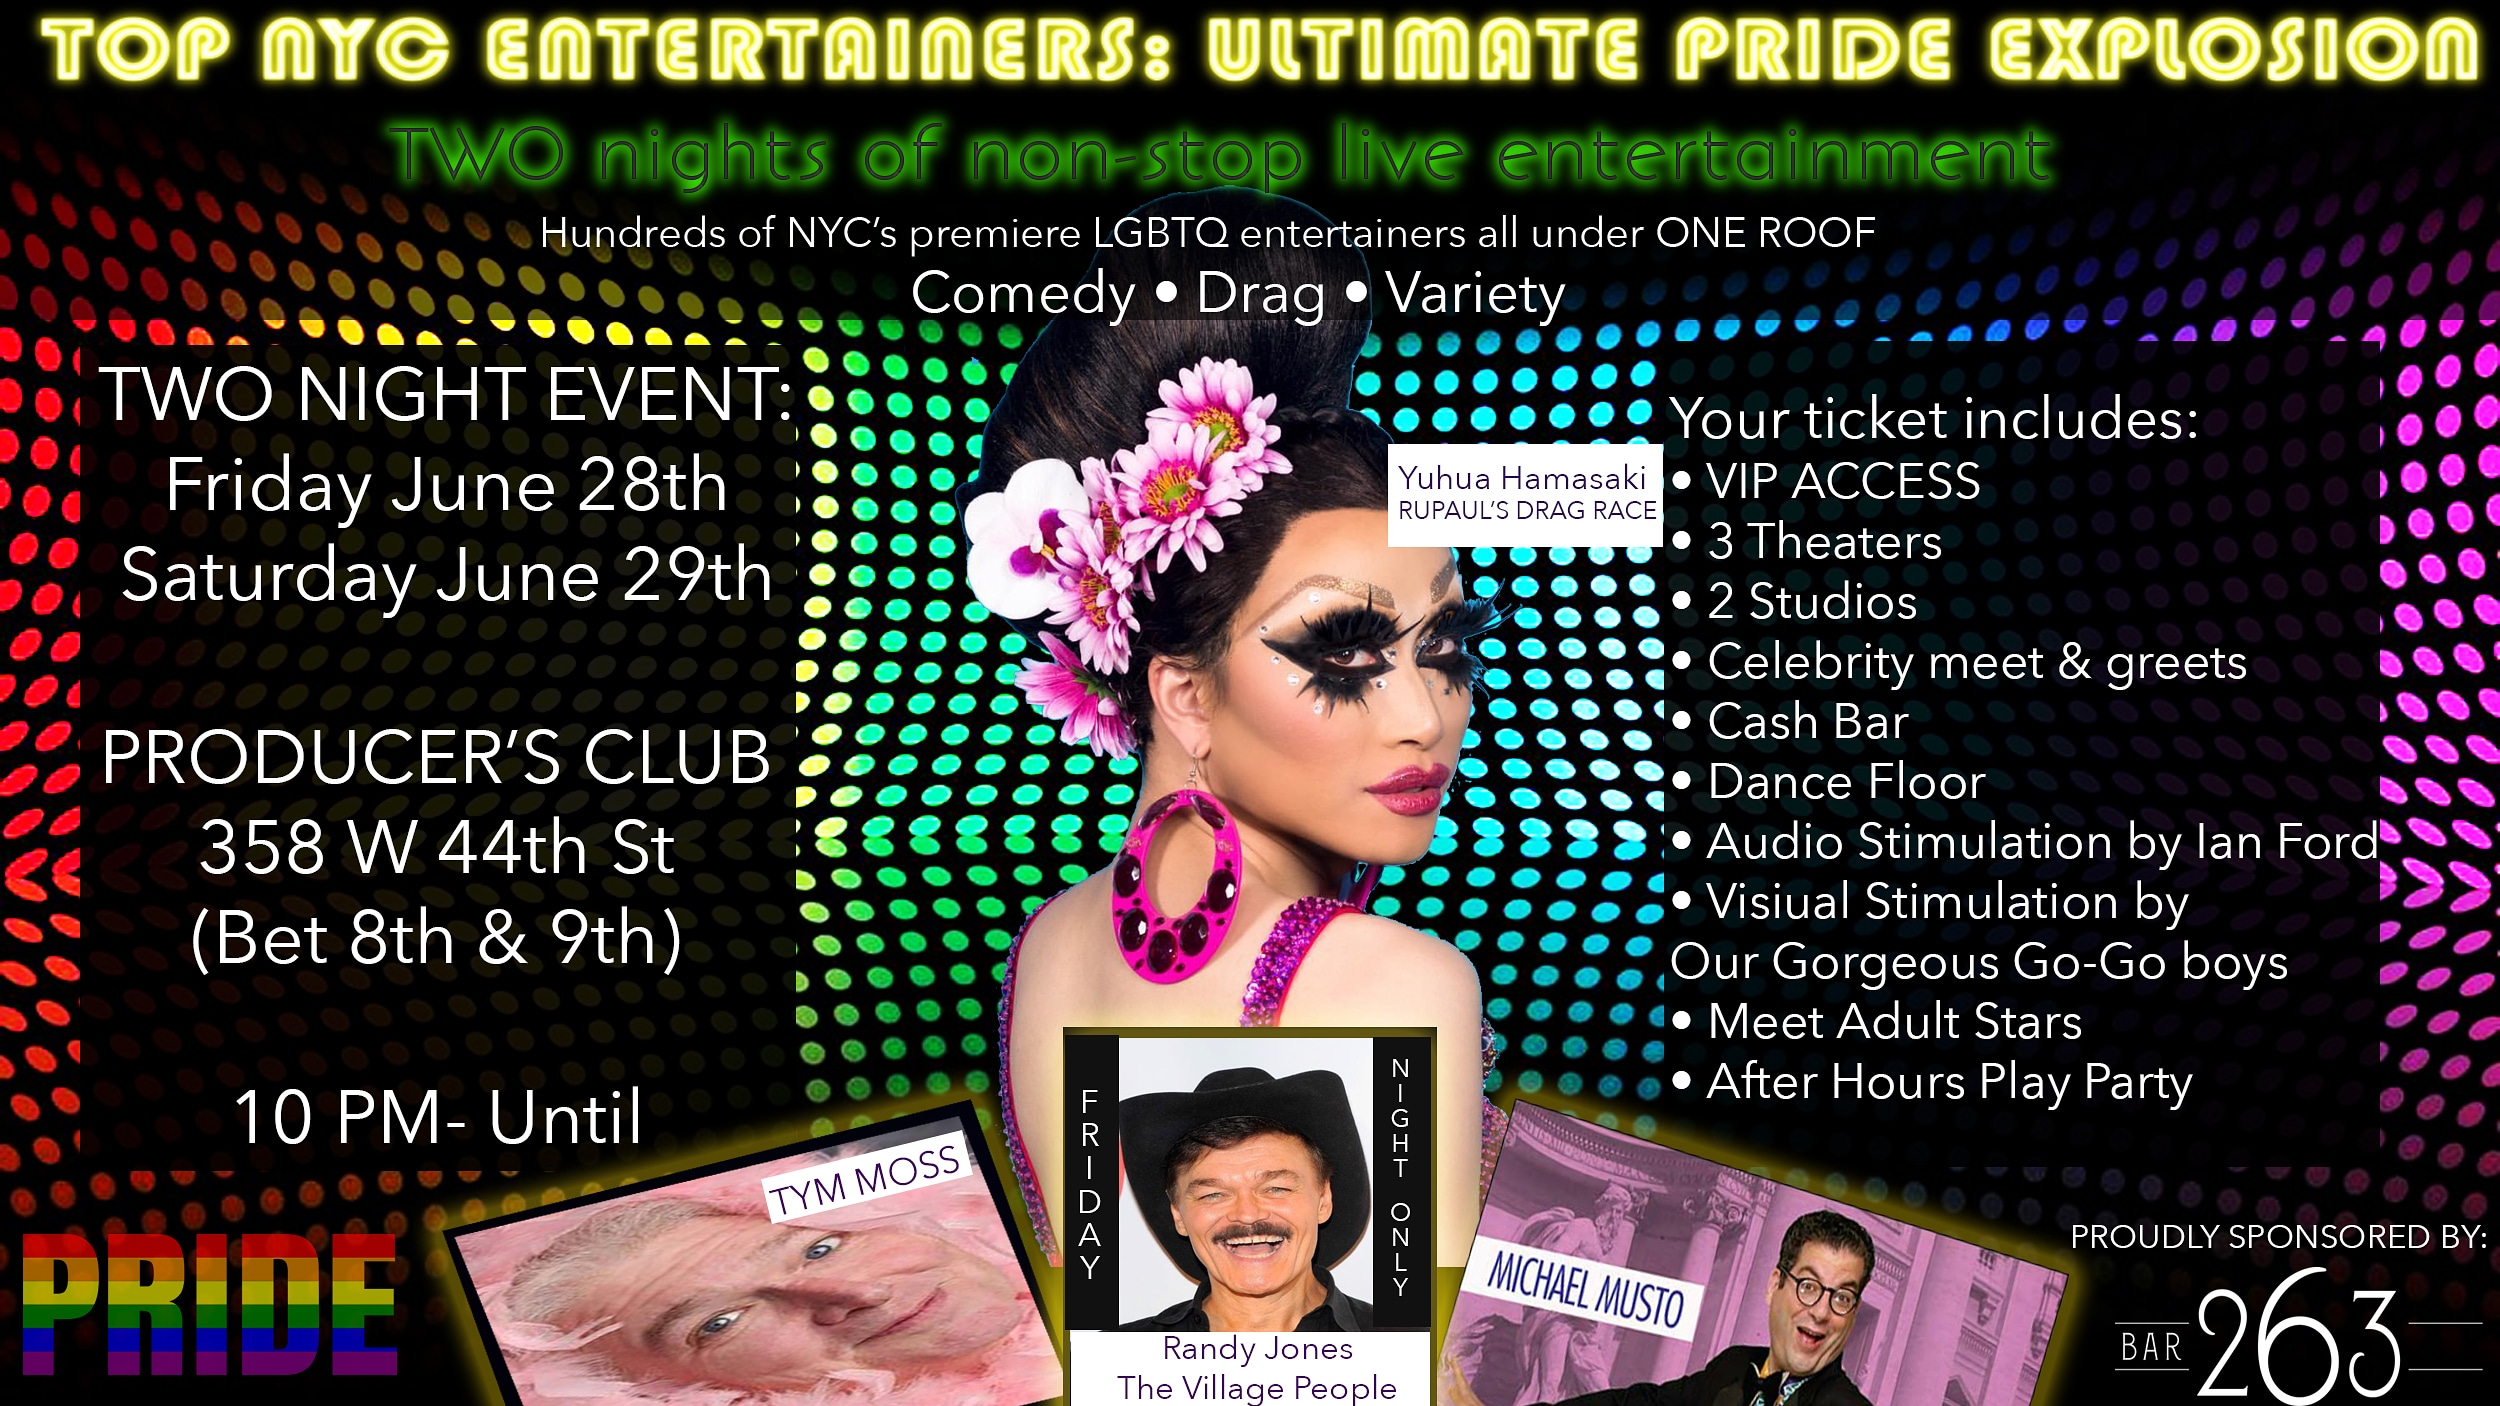 TOP NYC PRIDE ENTERTAINERS